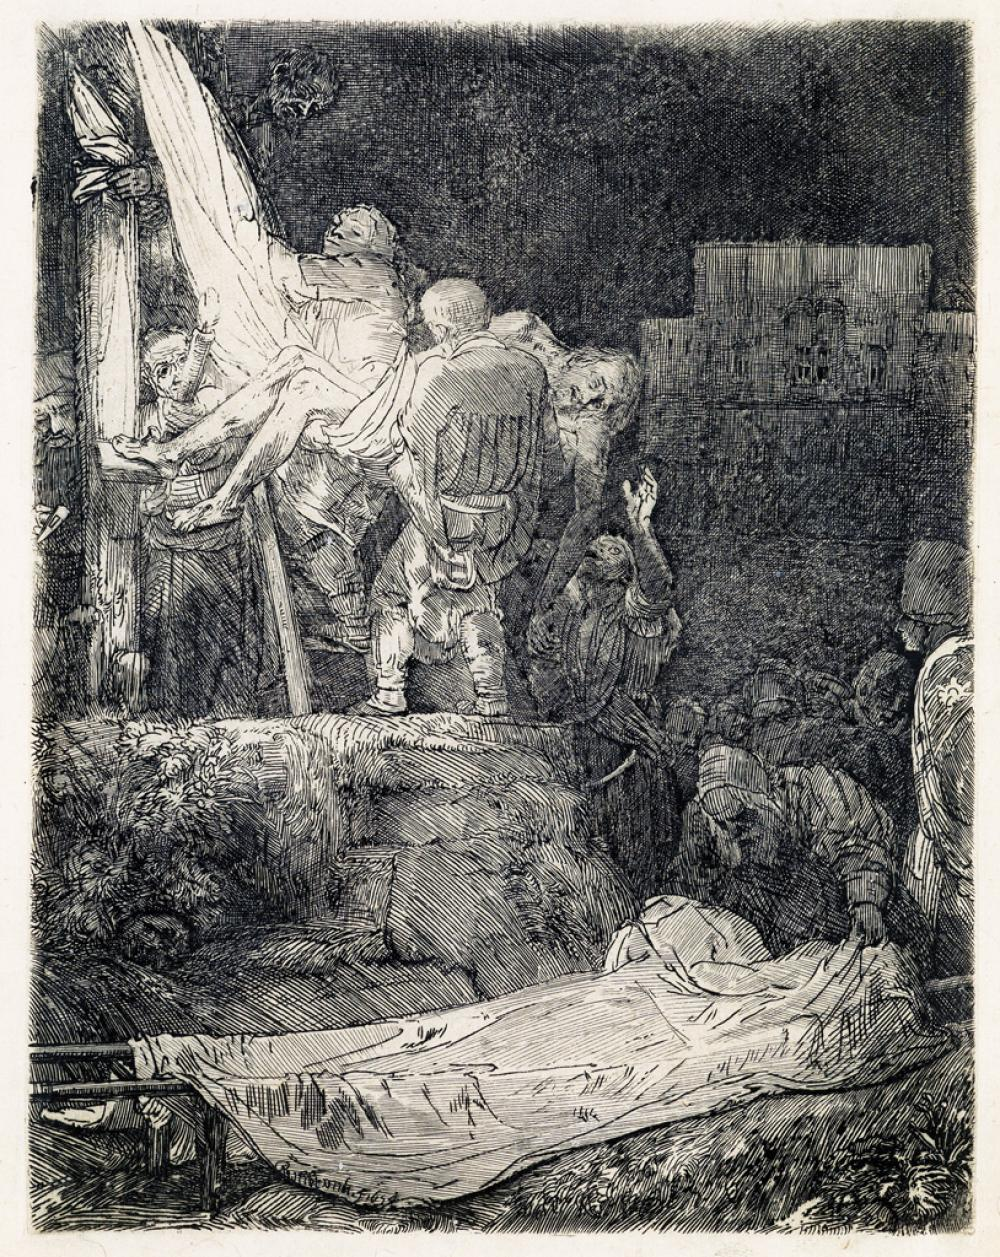 REMBRANDT VAN RIJN The Descent from the Cross by Torchlight.